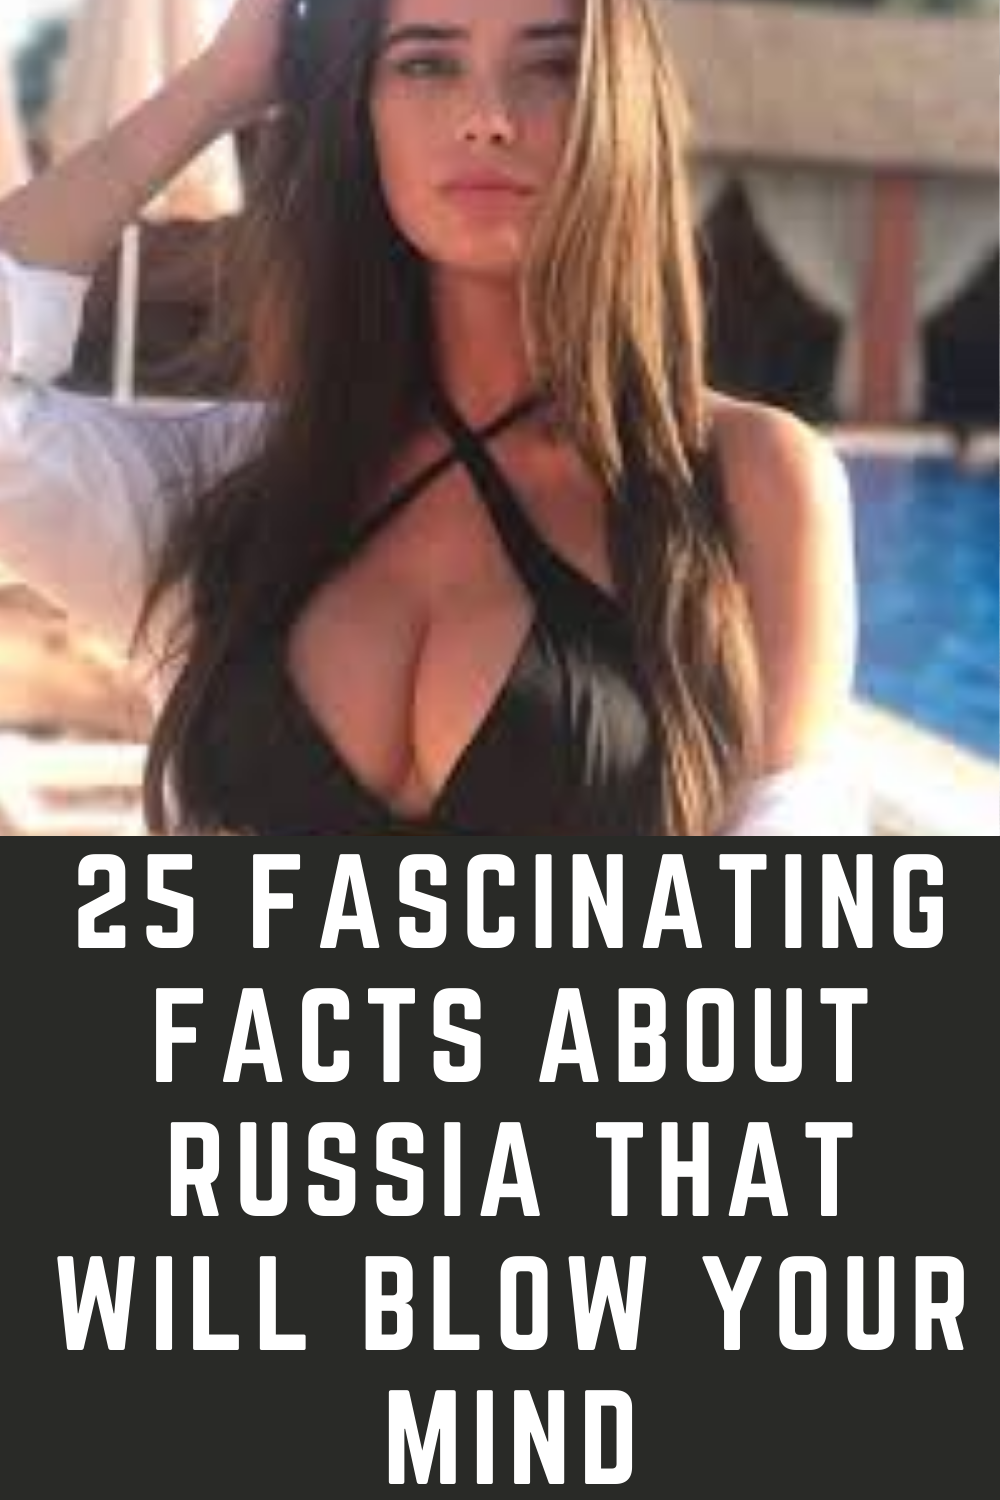 Christmas Facts 2020 Funny 25 Fascinating Facts About Russia That Will Blow Your Mind in 2020